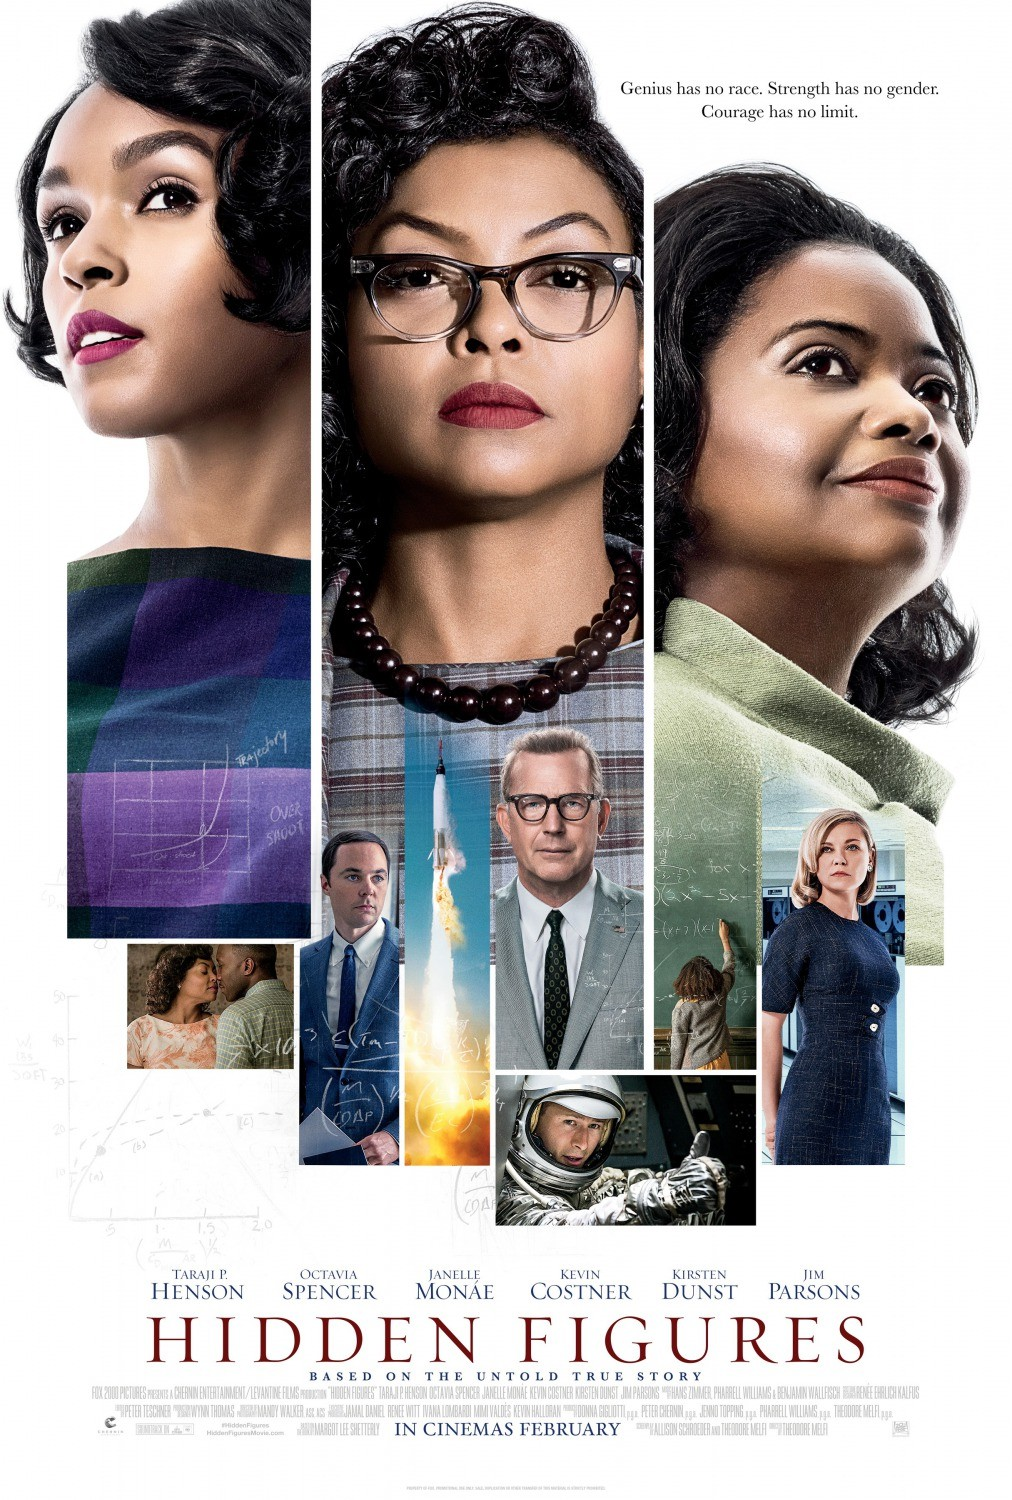 http://www.metacritic.com/movie/hidden-figures